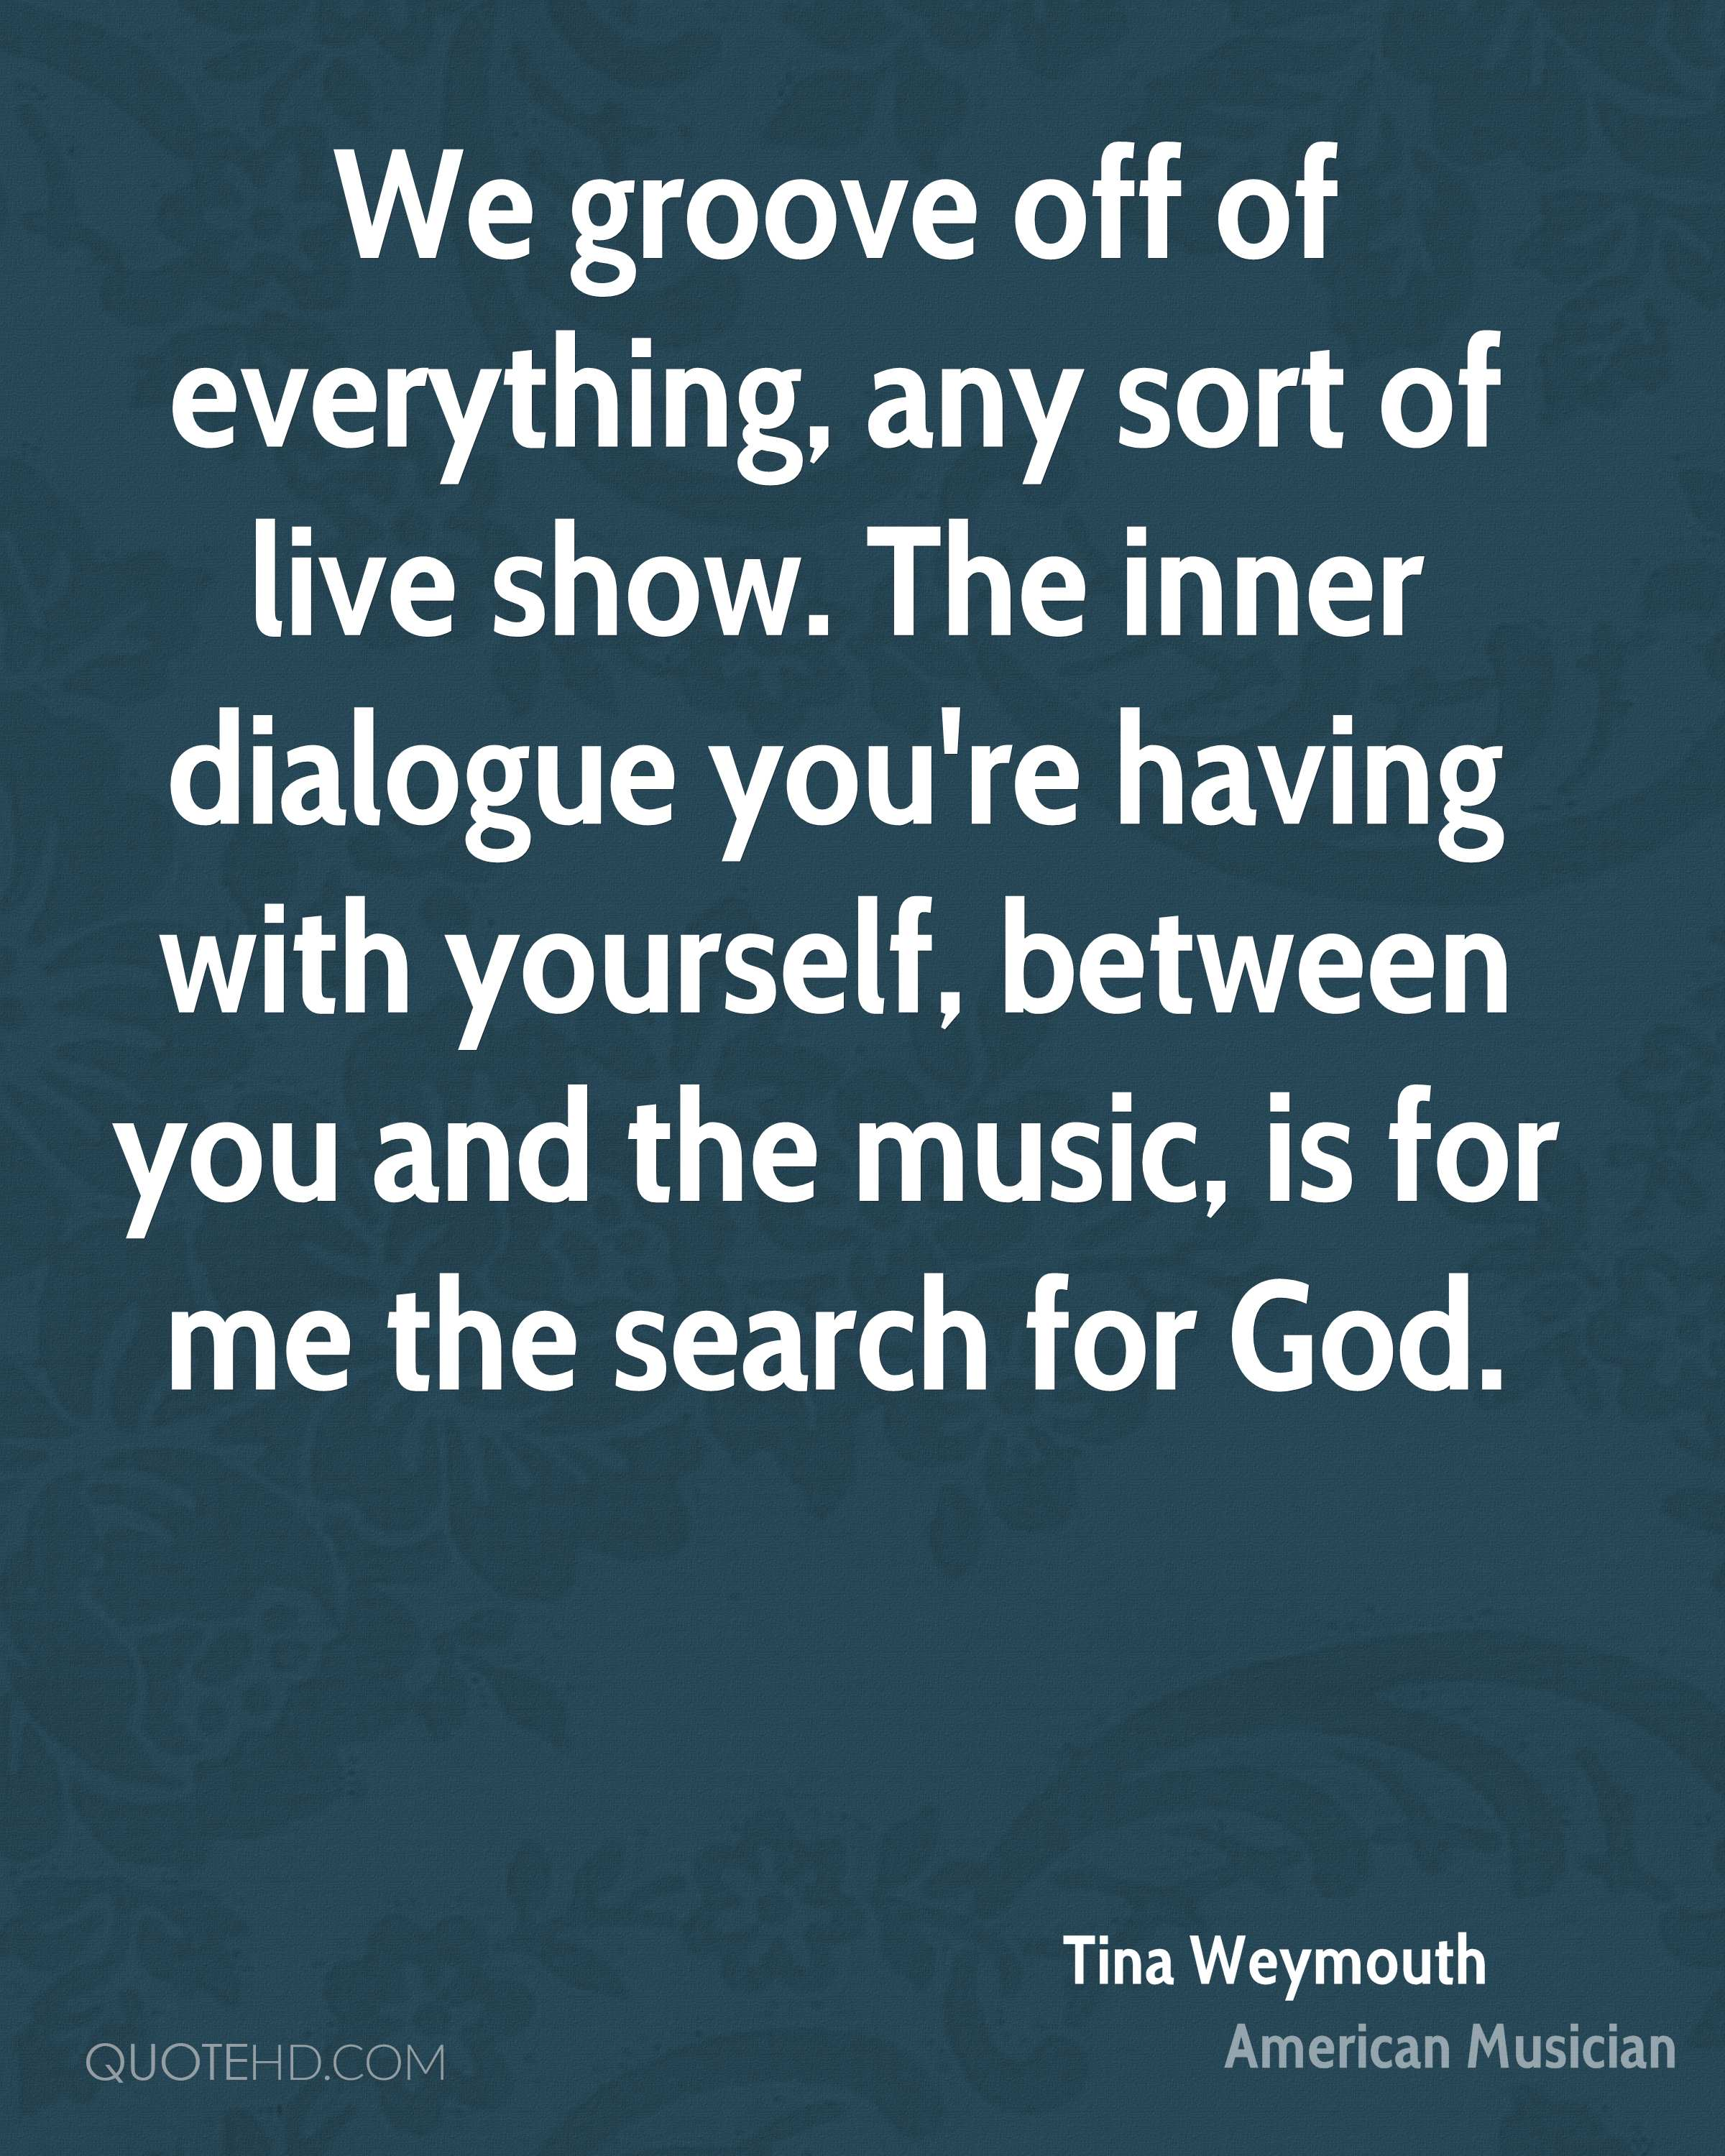 We groove off of everything, any sort of live show. The inner dialogue you're having with yourself, between you and the music, is for me the search for God.